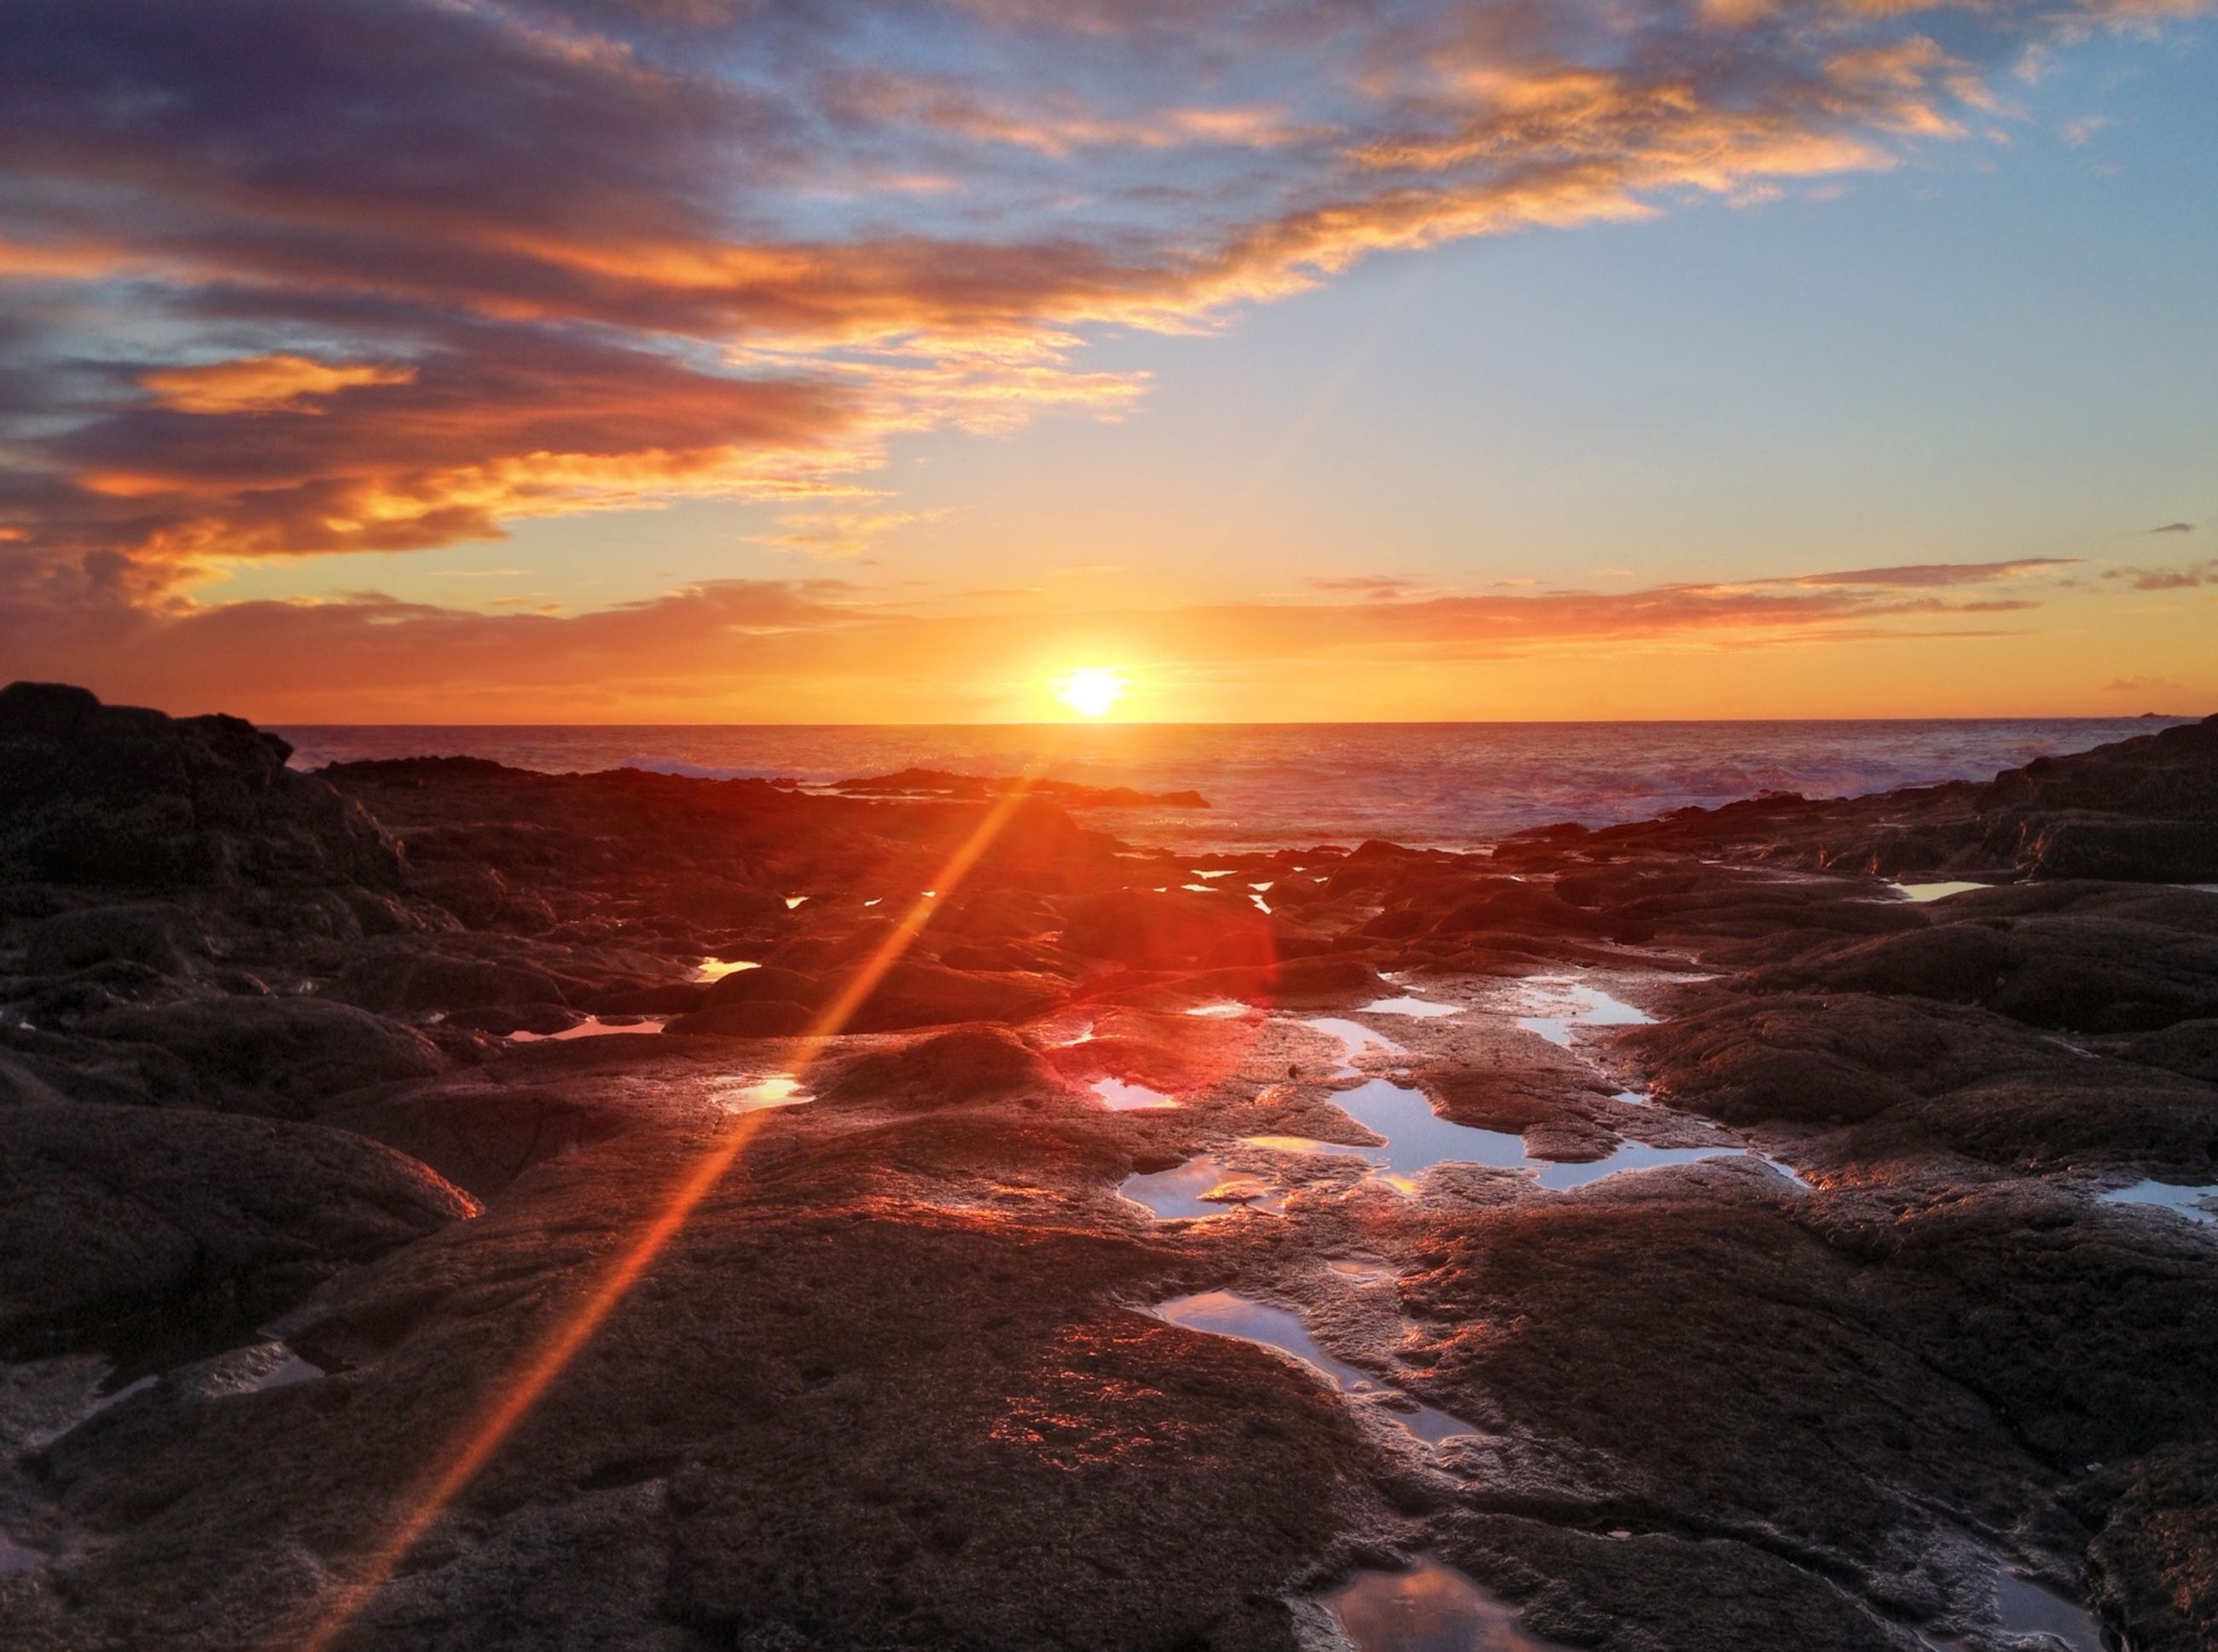 sunset, sun, sea, sky, water, scenics, beauty in nature, beach, tranquil scene, orange color, tranquility, horizon over water, cloud - sky, sunbeam, nature, shore, lens flare, sunlight, idyllic, rock - object